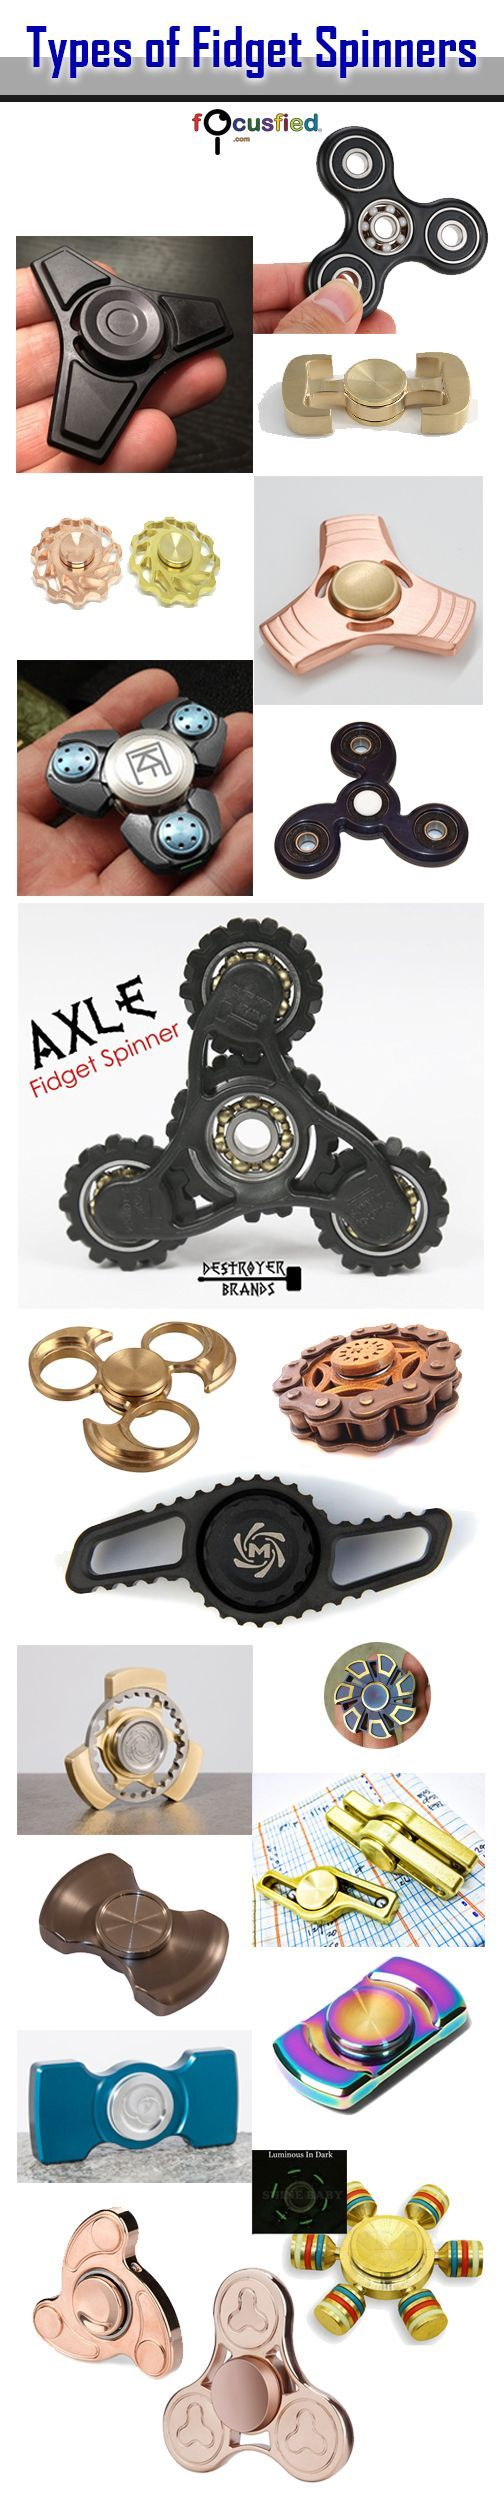 Here is one of the more comprehensive list of fidget spinners in the market today. Fidget toys are all the rage for those of us ADHD, ADD hyper people.